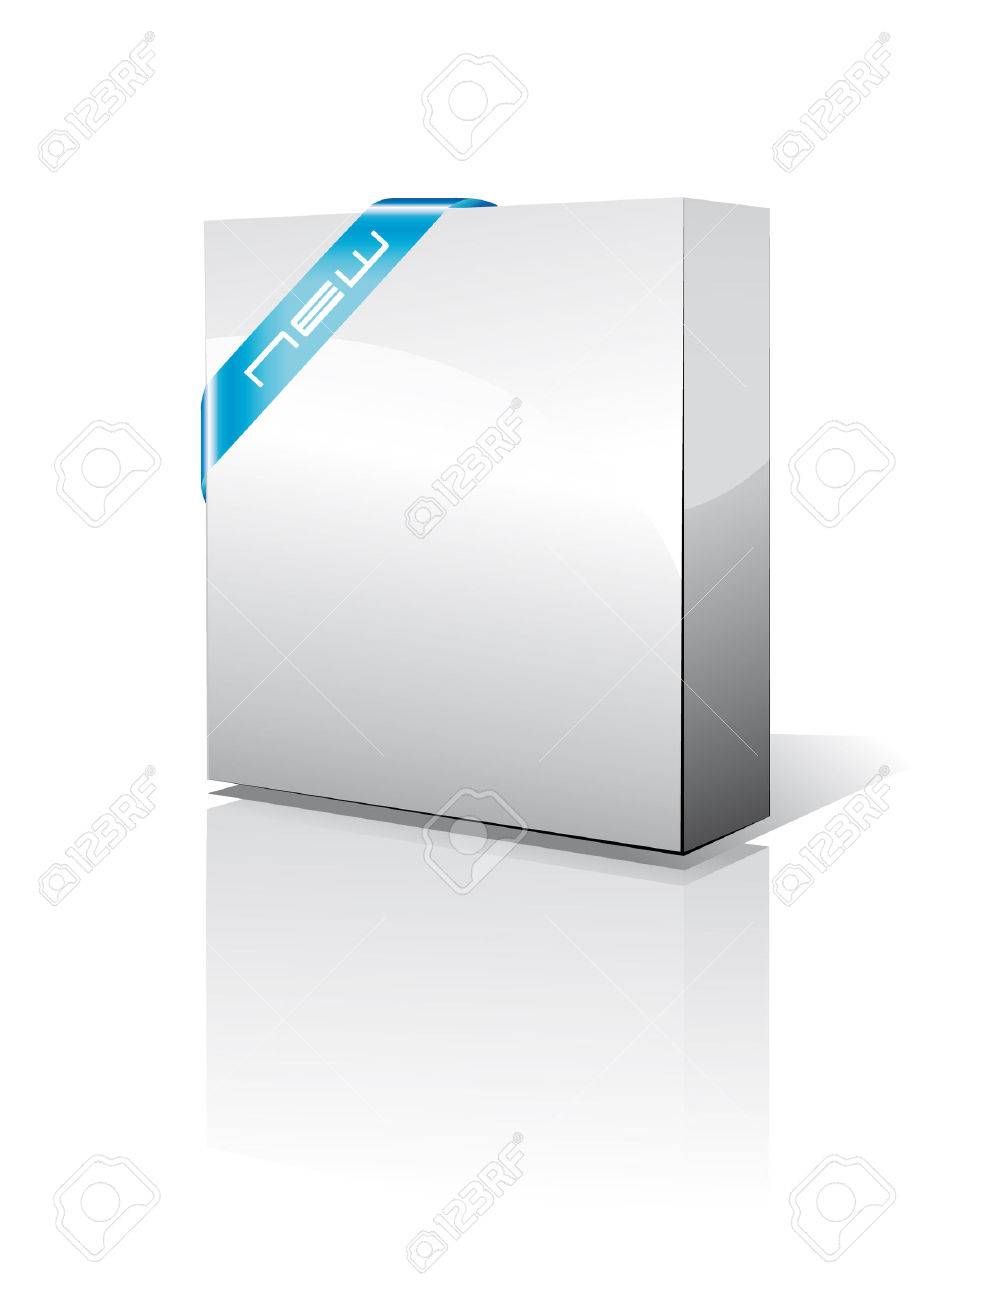 3D Software Box View Stock Vector - 9935595